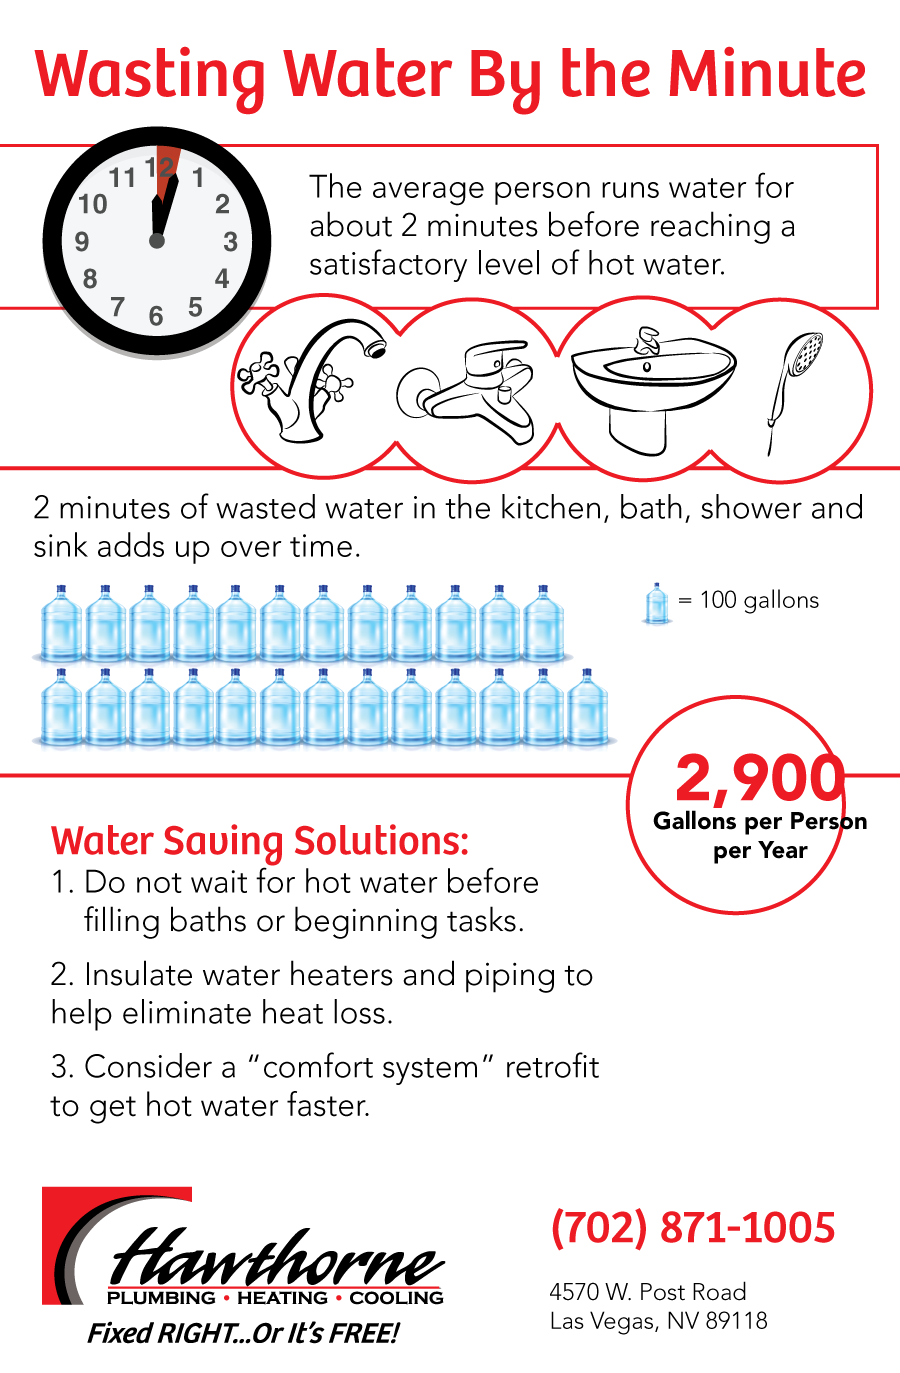 A comfort system retrofit could save your home as much as 2,900 gallons of water per year